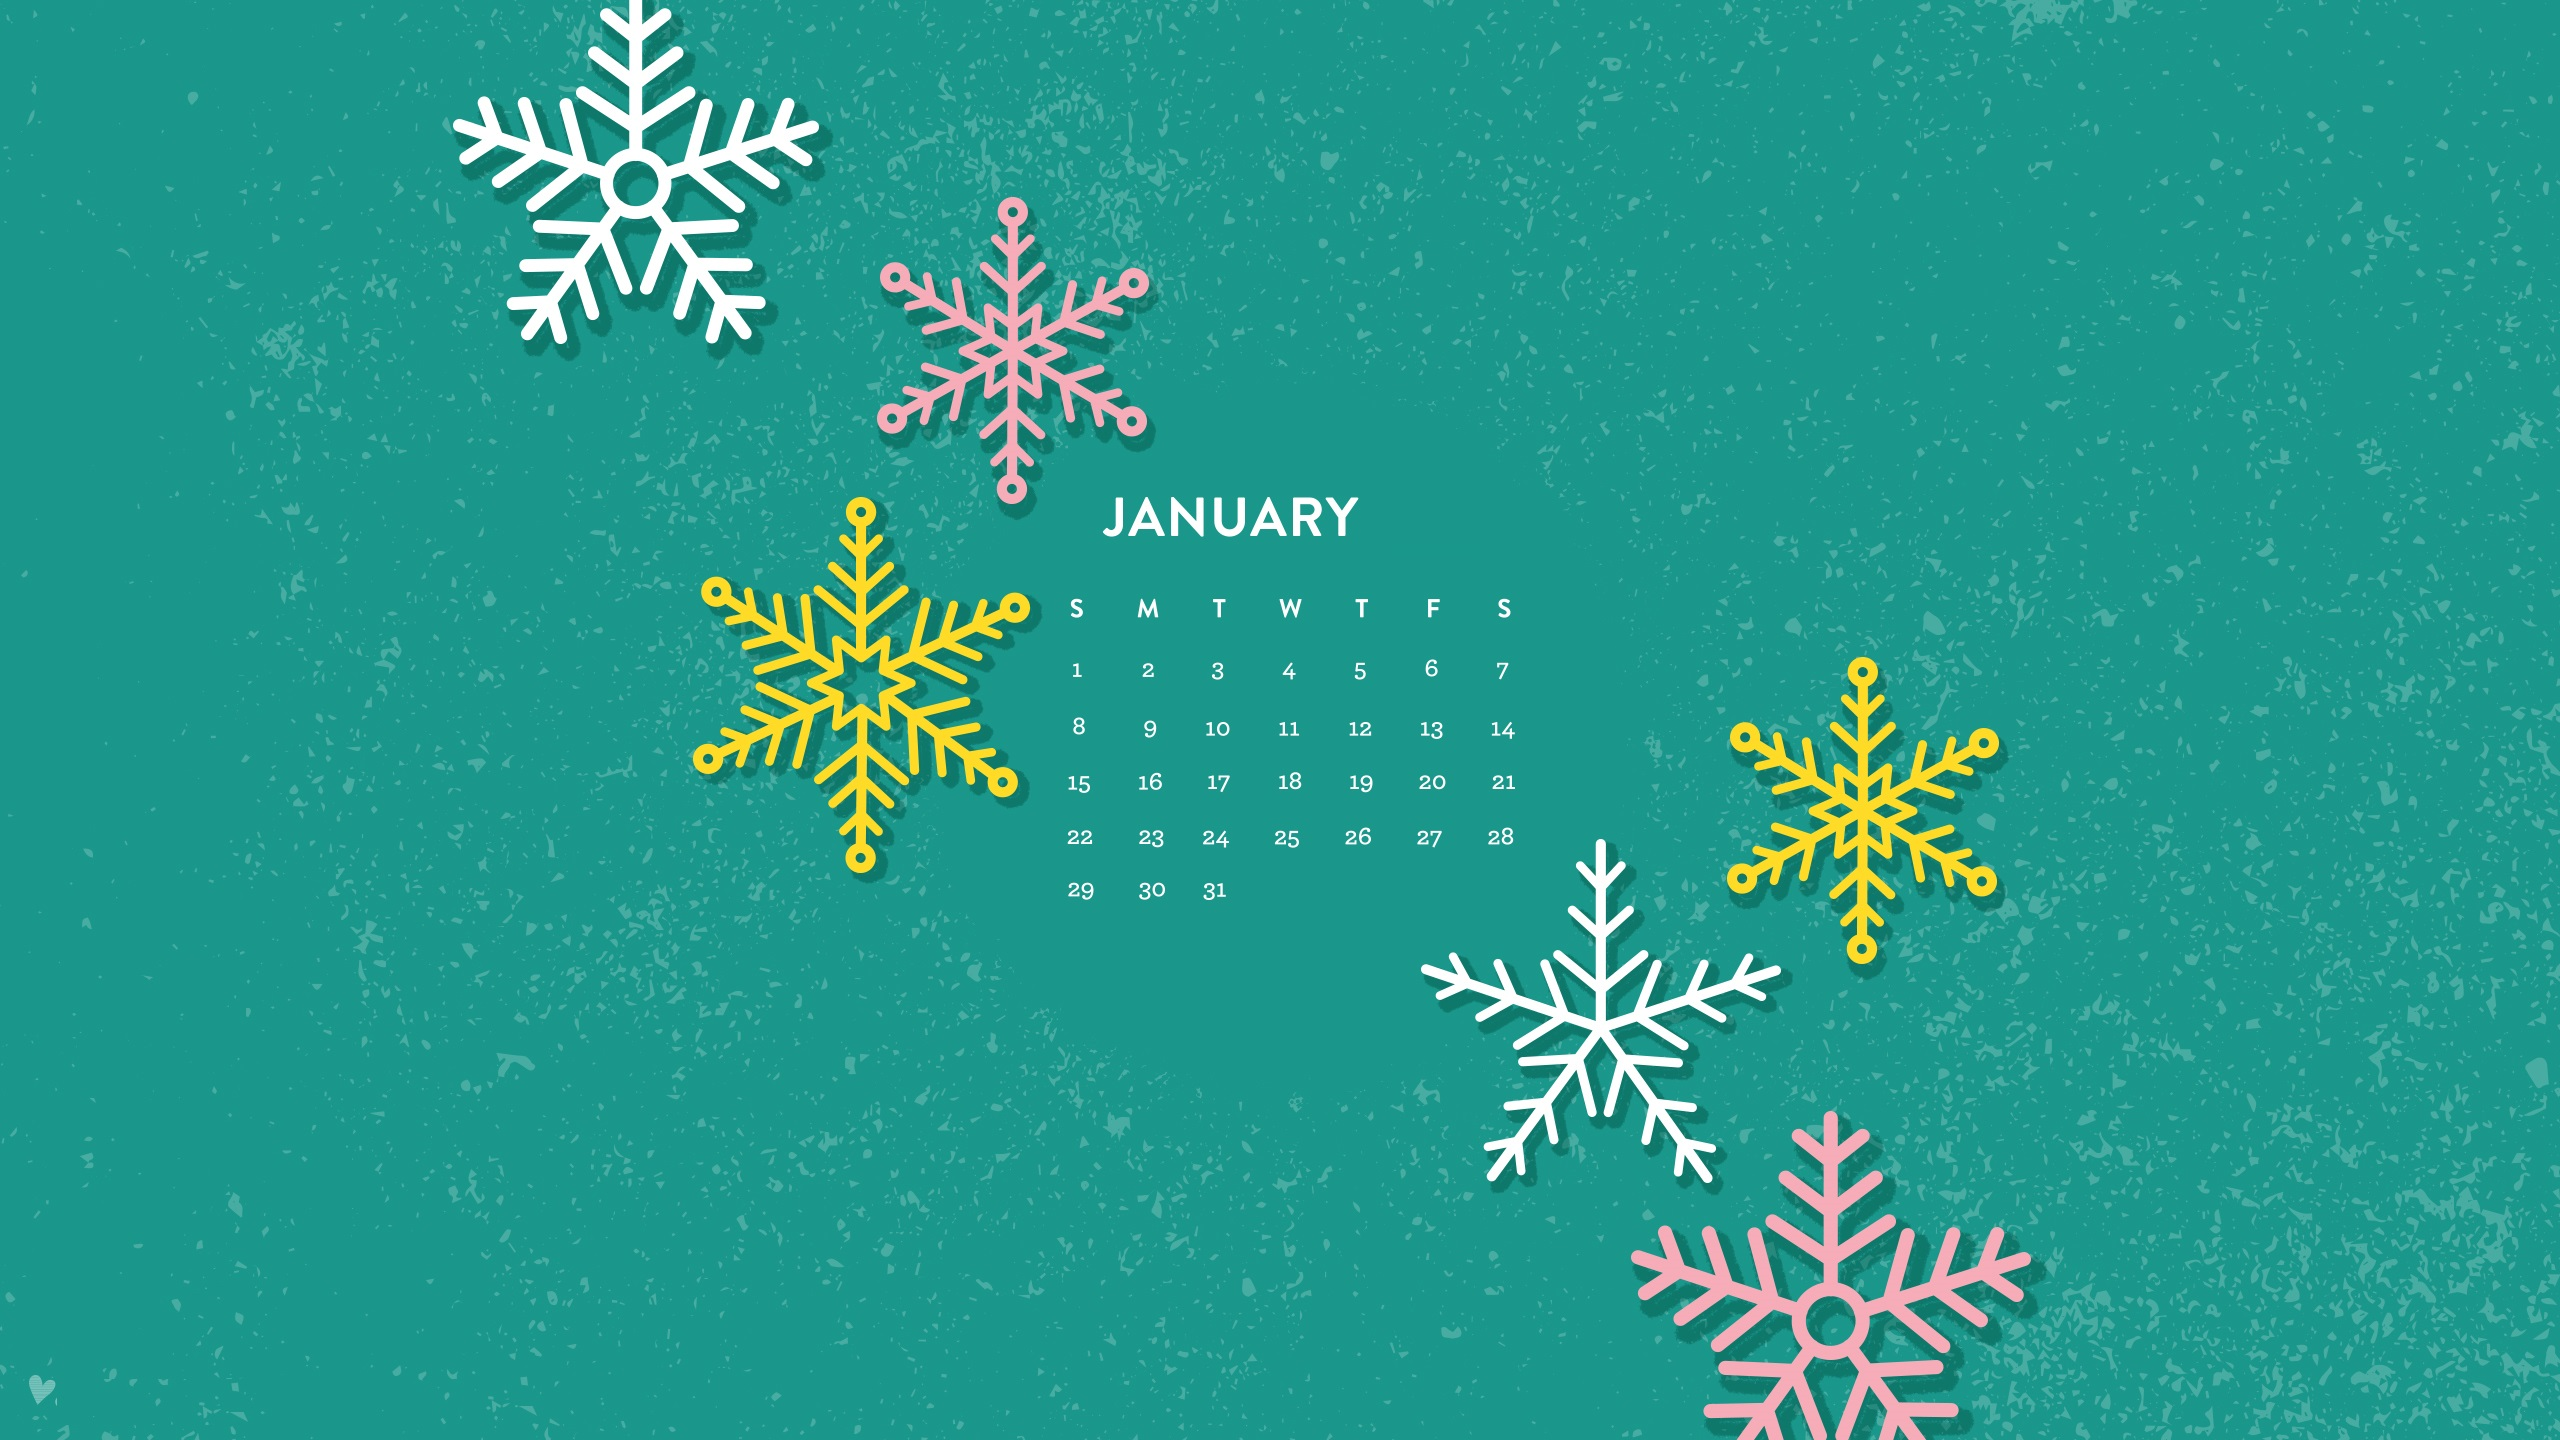 January 2019 HD Calendar Wallpapers Latest Calendar 2560x1440